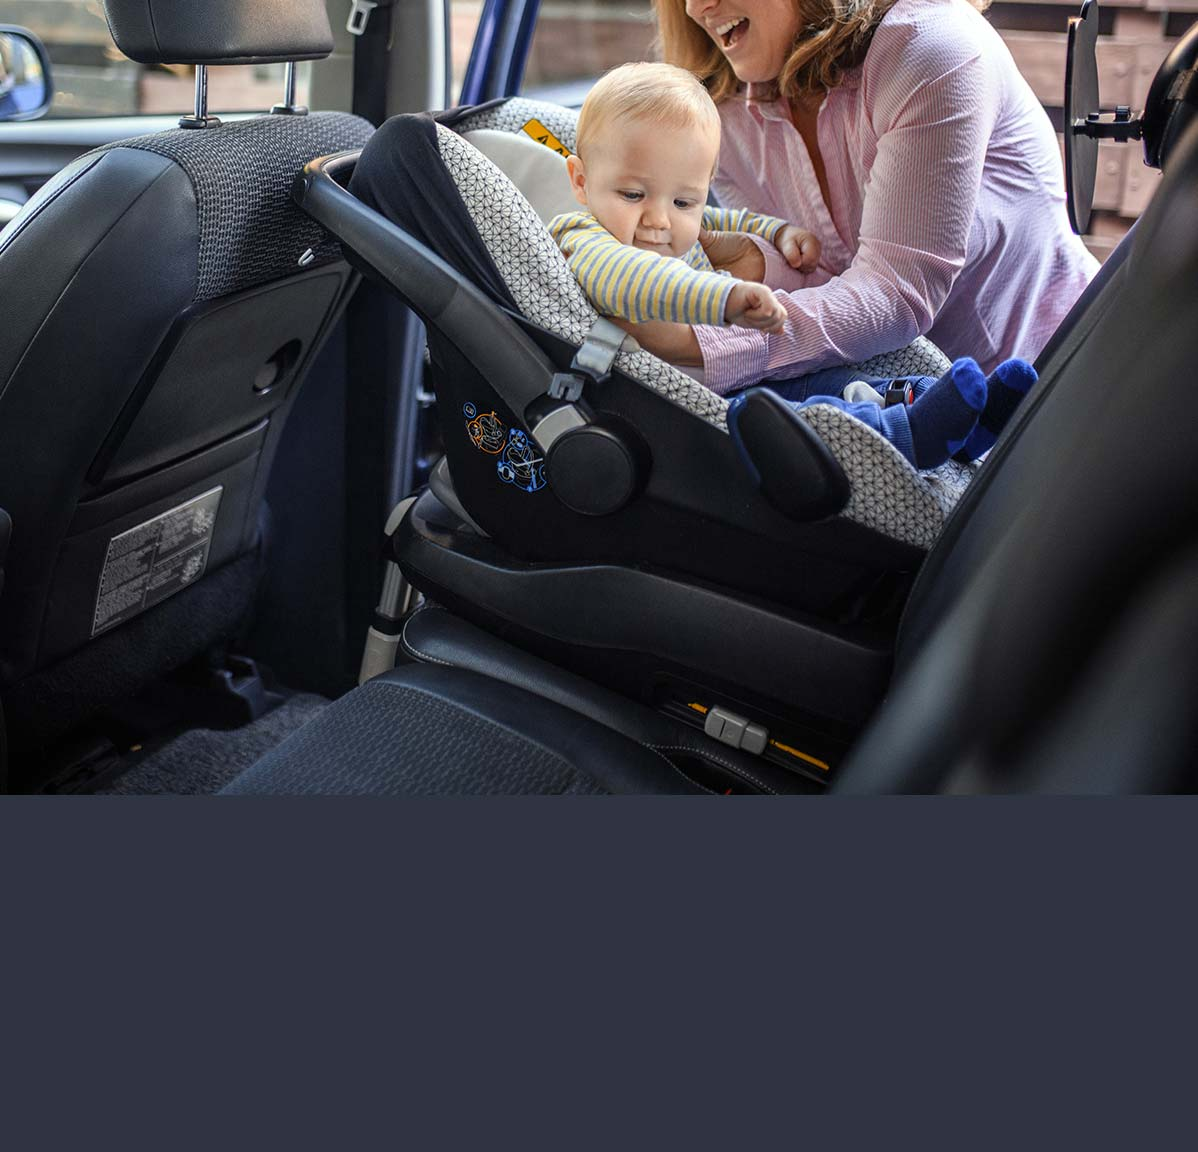 Car Seats for Babies, Toddlers, \u0026 Kids